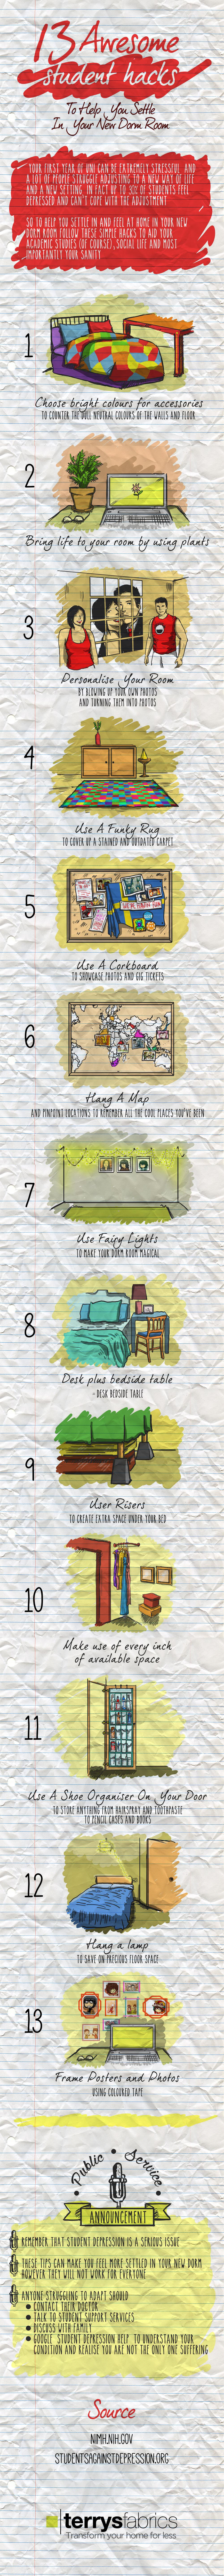 13 Student Hacks For Your New College Dorm